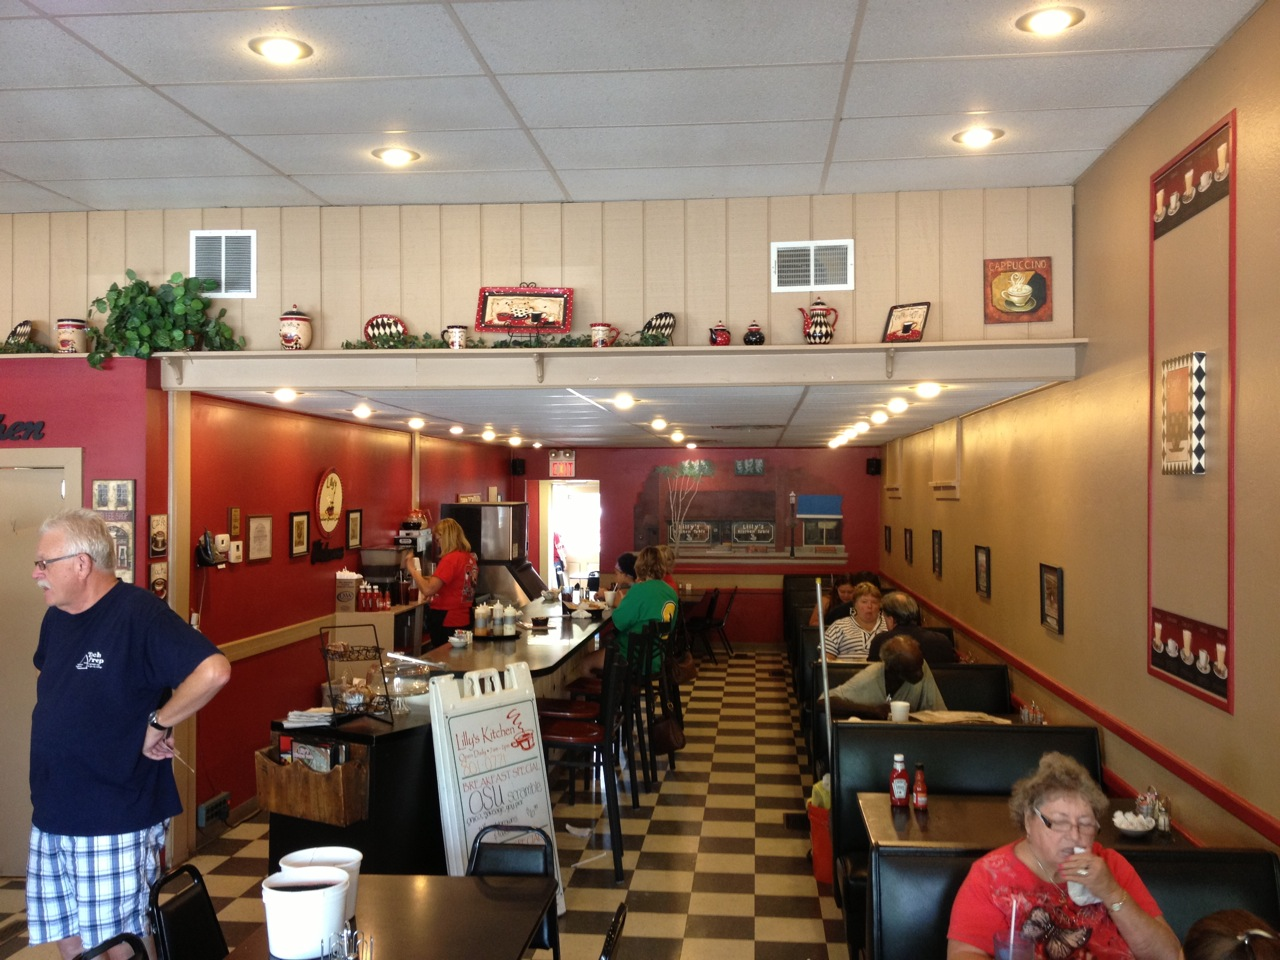 lillys kitchen table grove city oh kitchen table restaurant Readers have been suggesting Lilly s Kitchen Table in downtown Grove City for a couple years now and I m happy to say we finally made good on it